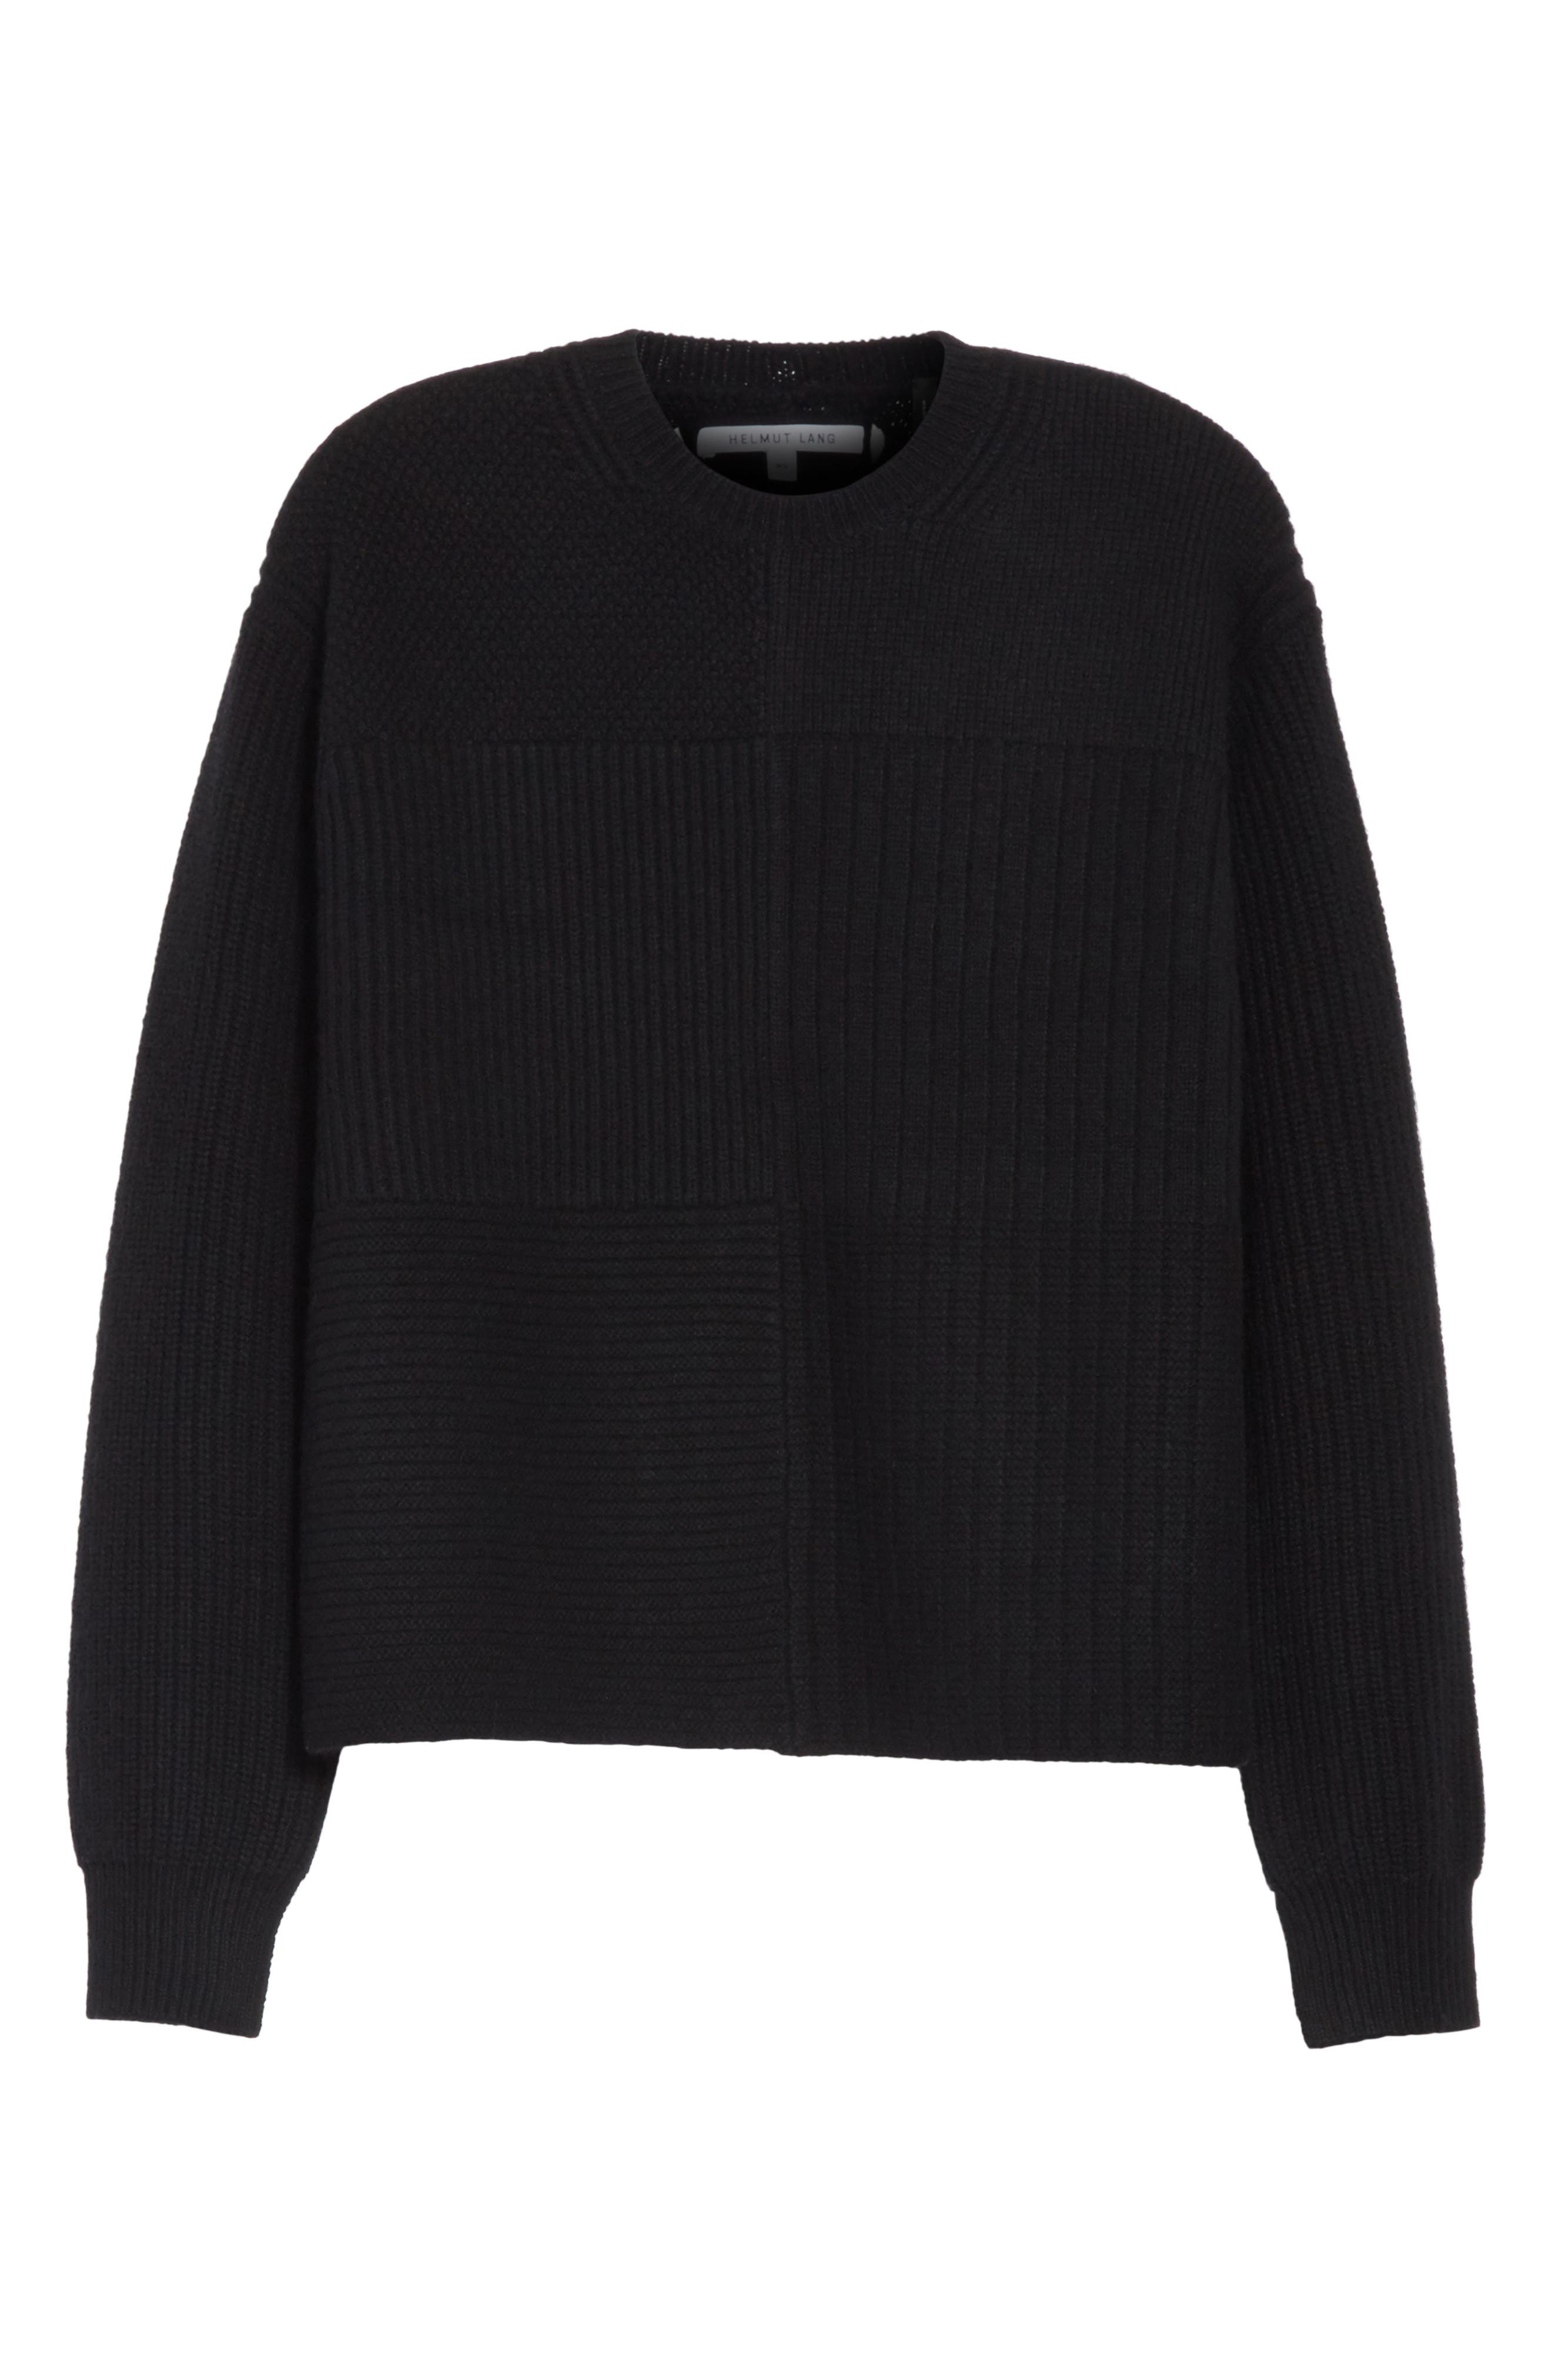 Wool Blend Textured Pullover,                             Alternate thumbnail 6, color,                             001